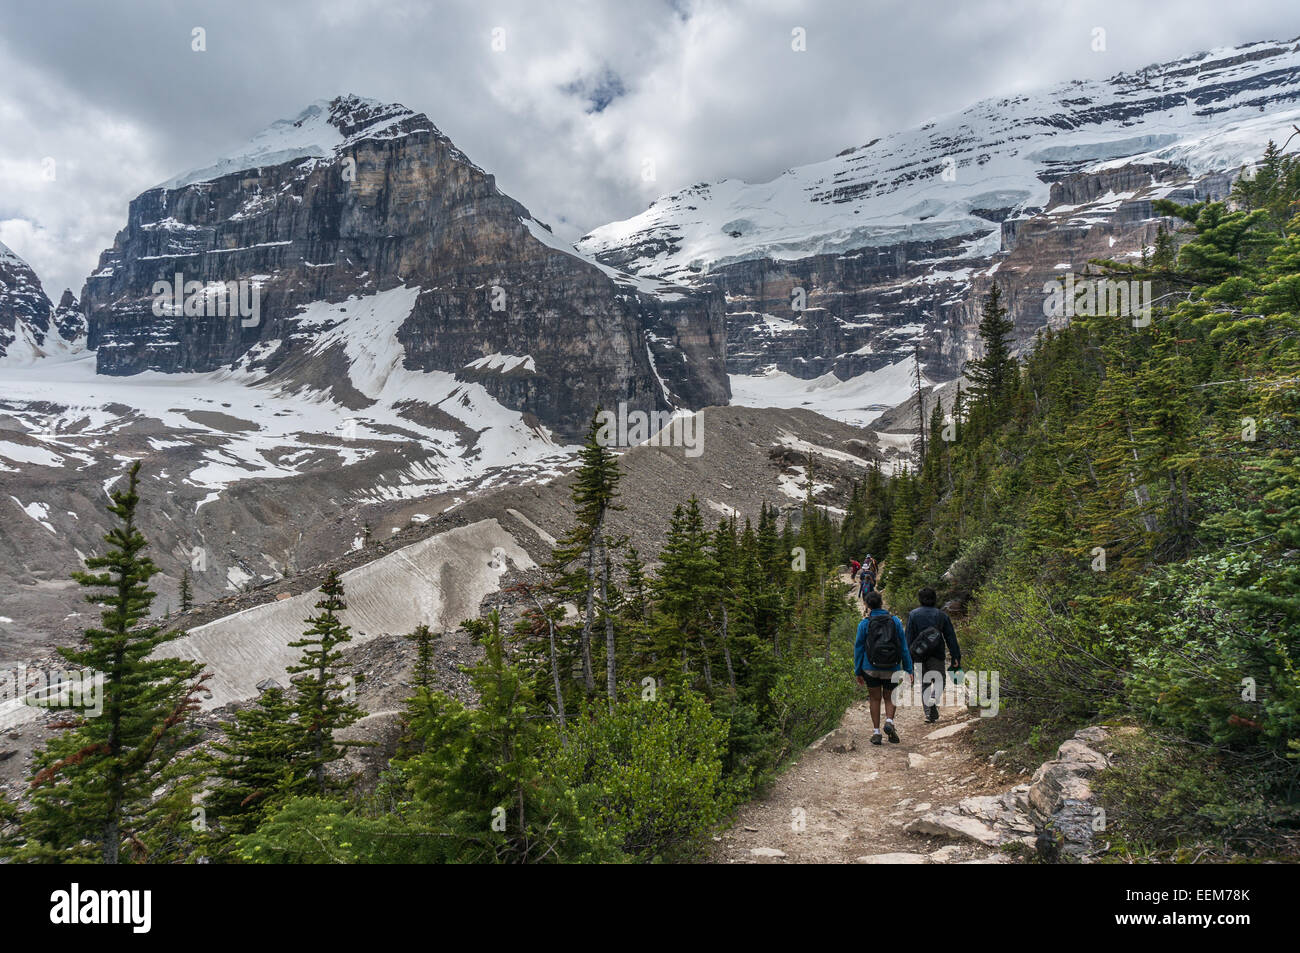 Canada, Banff National Park, Canadian Rockies, Plain of Six Glaciers, Rear view of hikers walking along trail - Stock Image